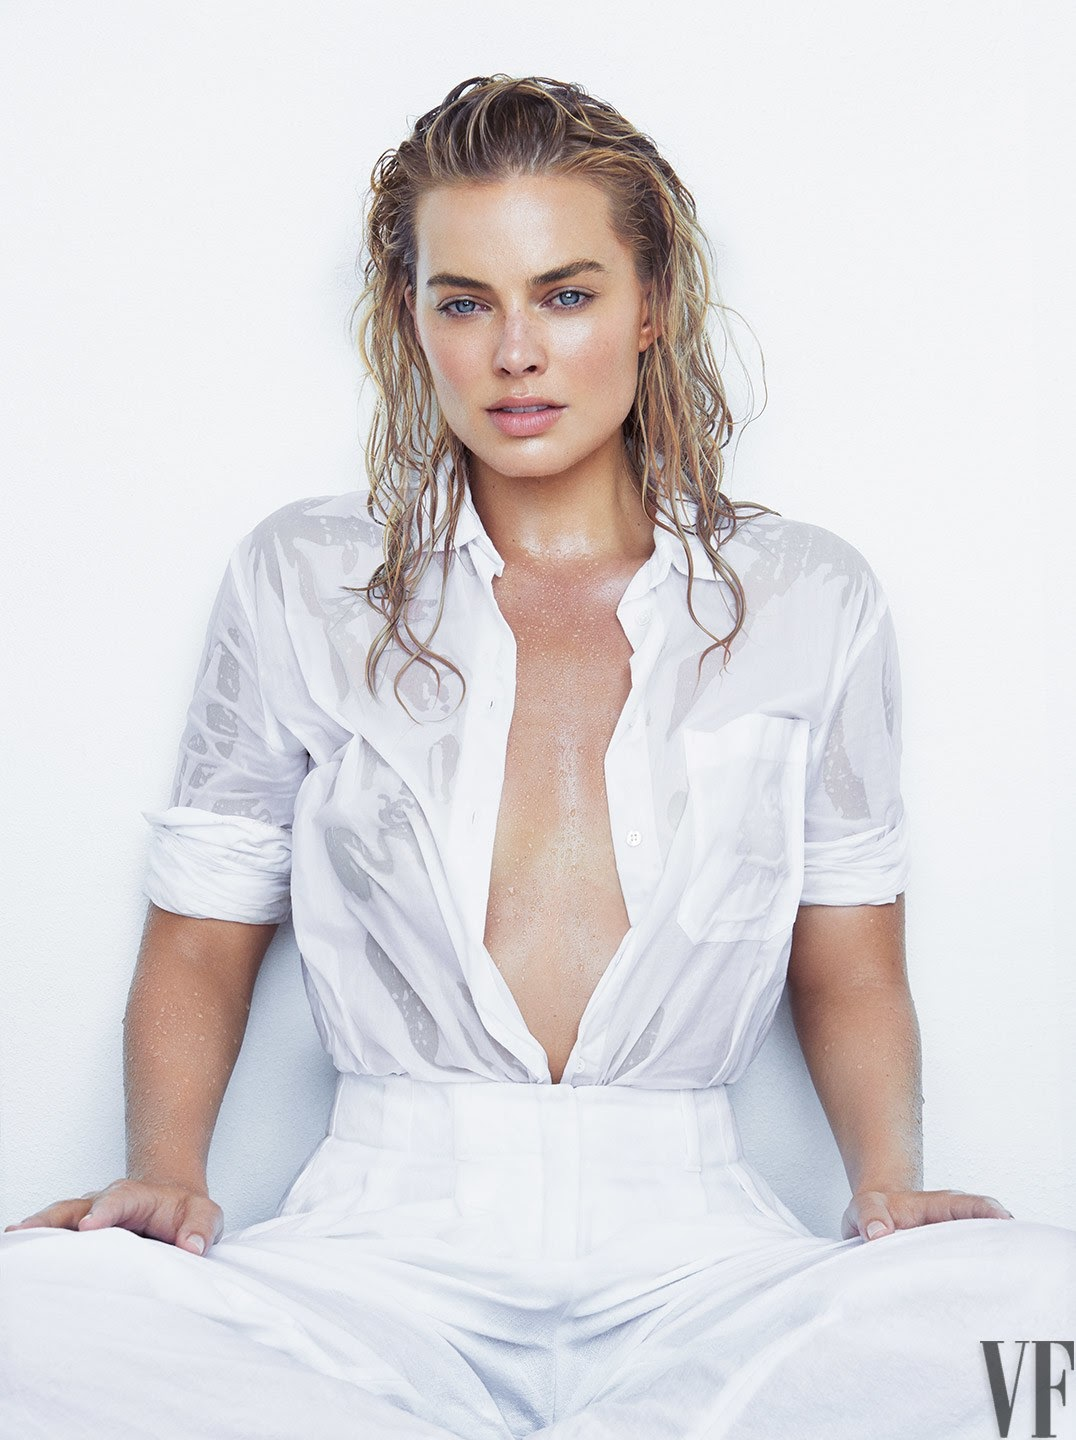 Aussie Actress Margot Robbie Looks Pretty Fantastic On The Cover Of Vanity Fair -4006